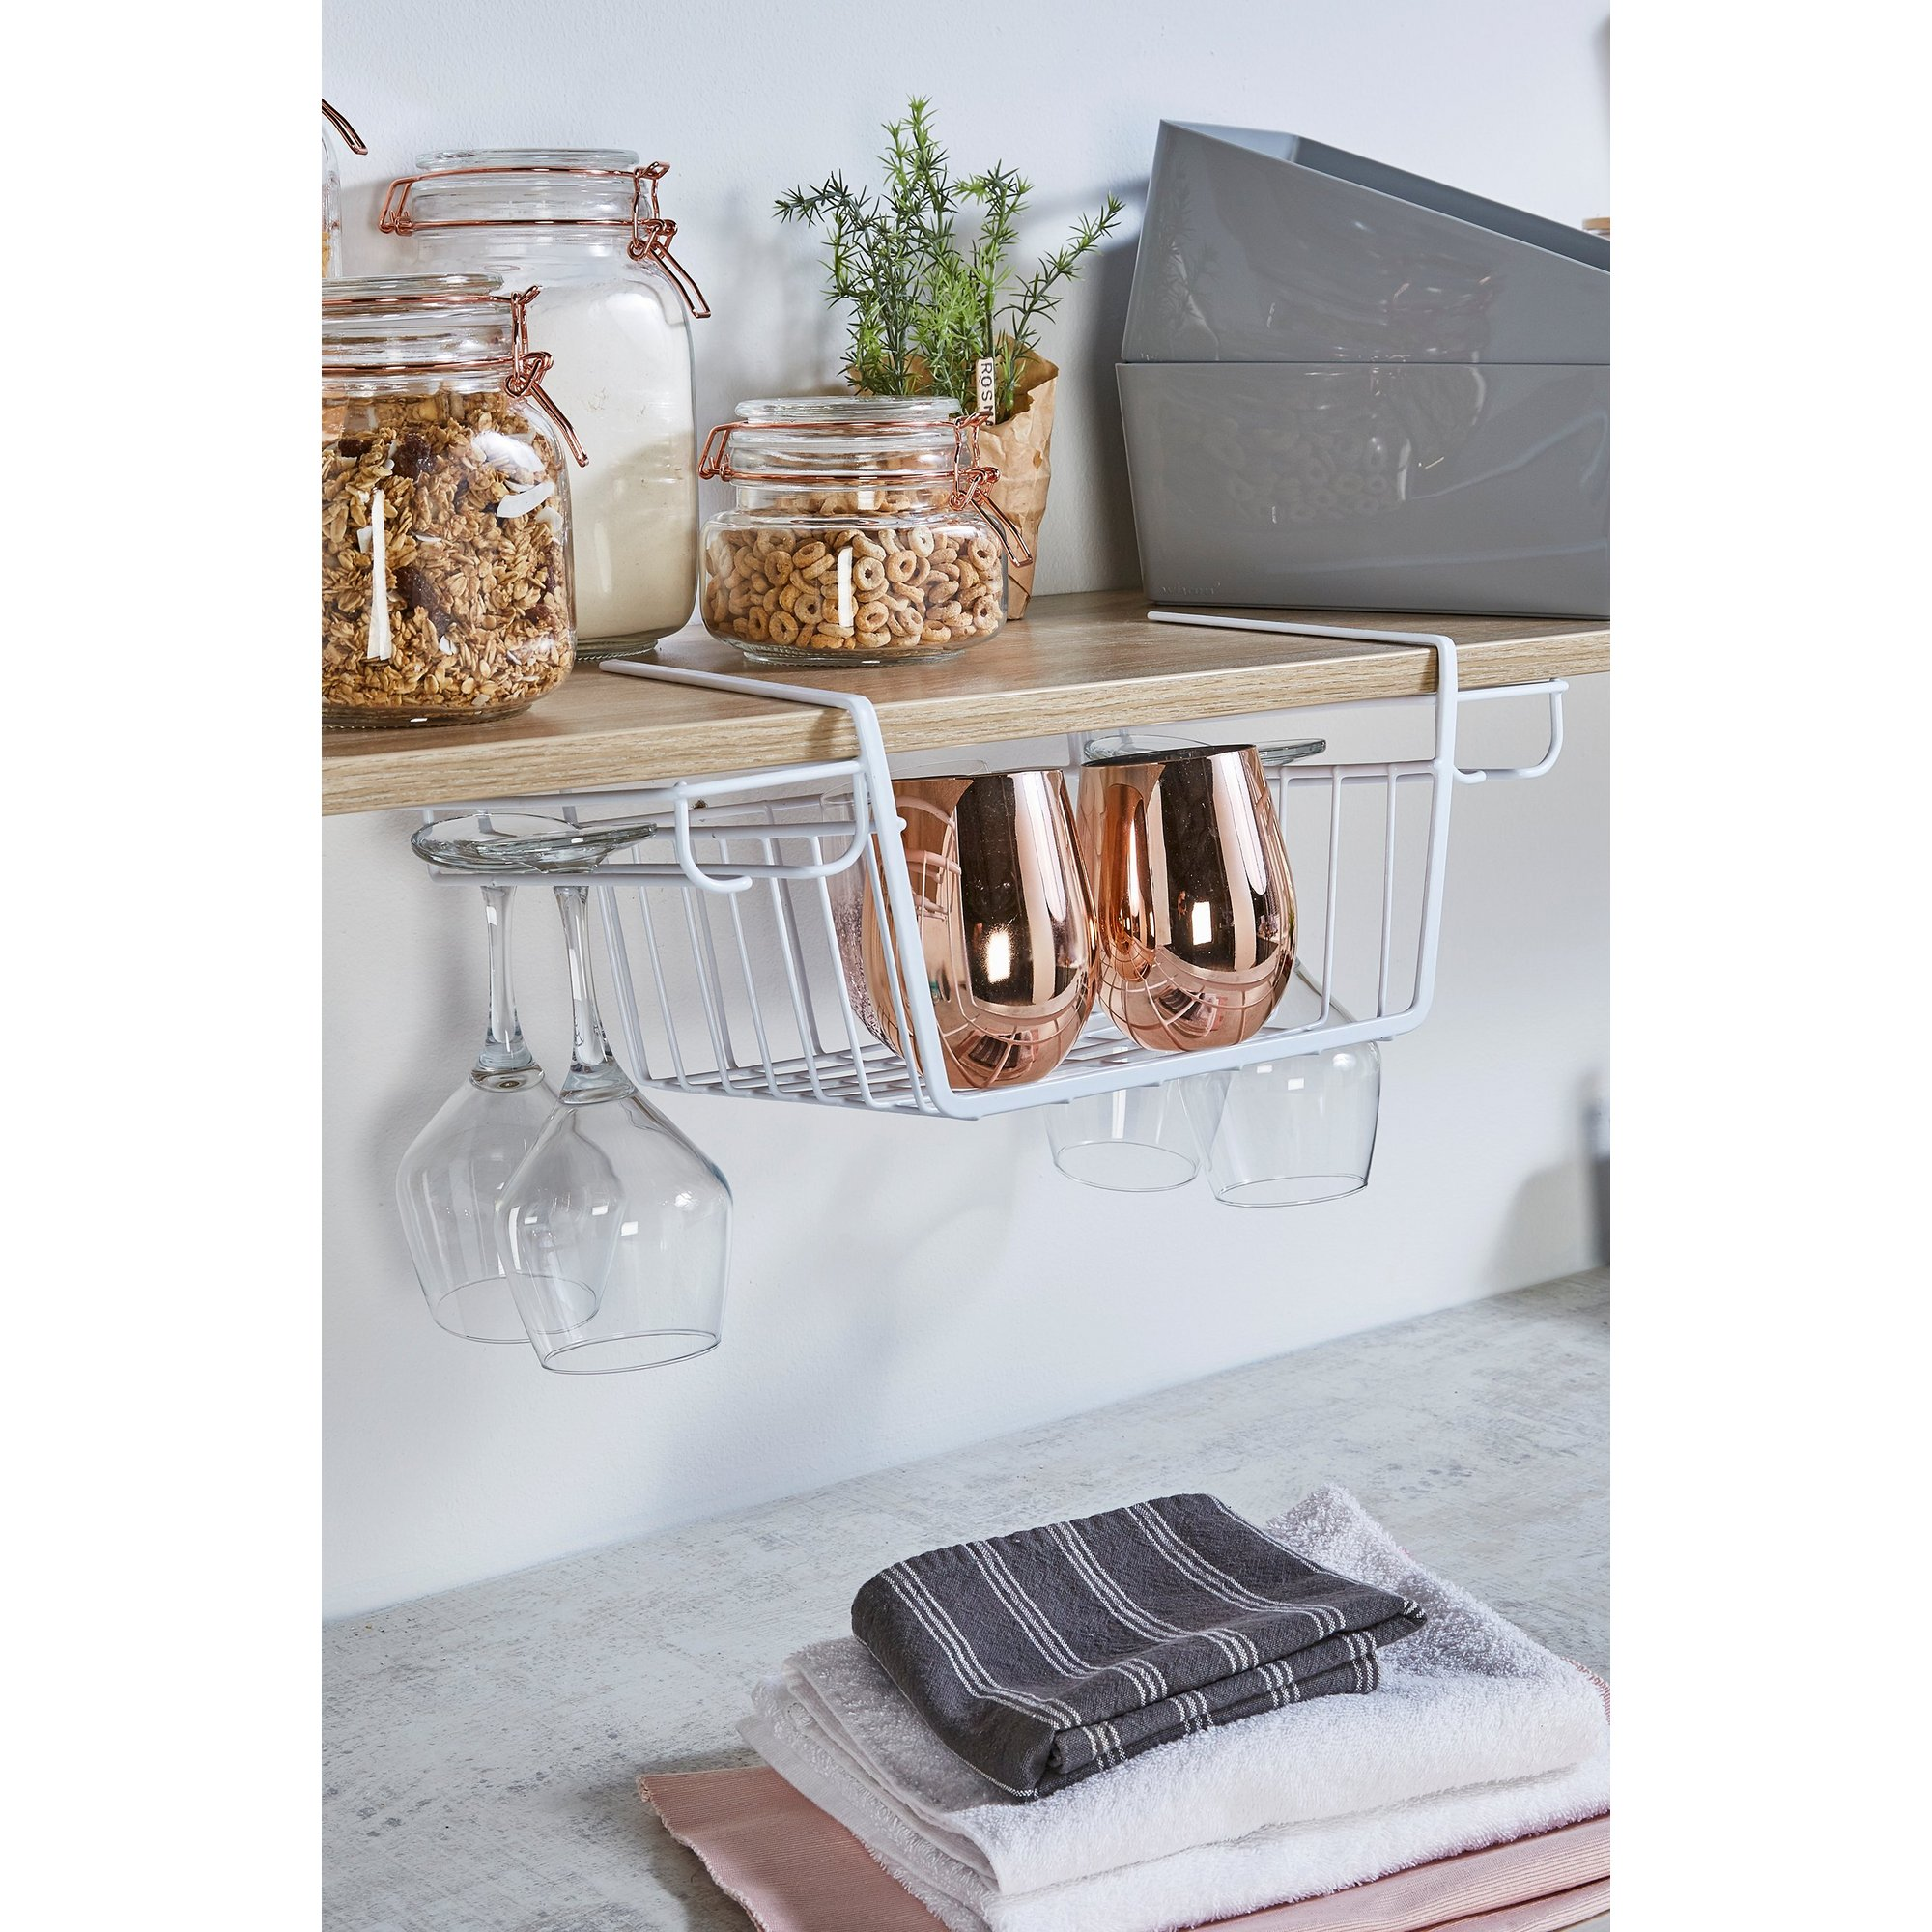 Image of Over Shelf Basket with Cup Holder